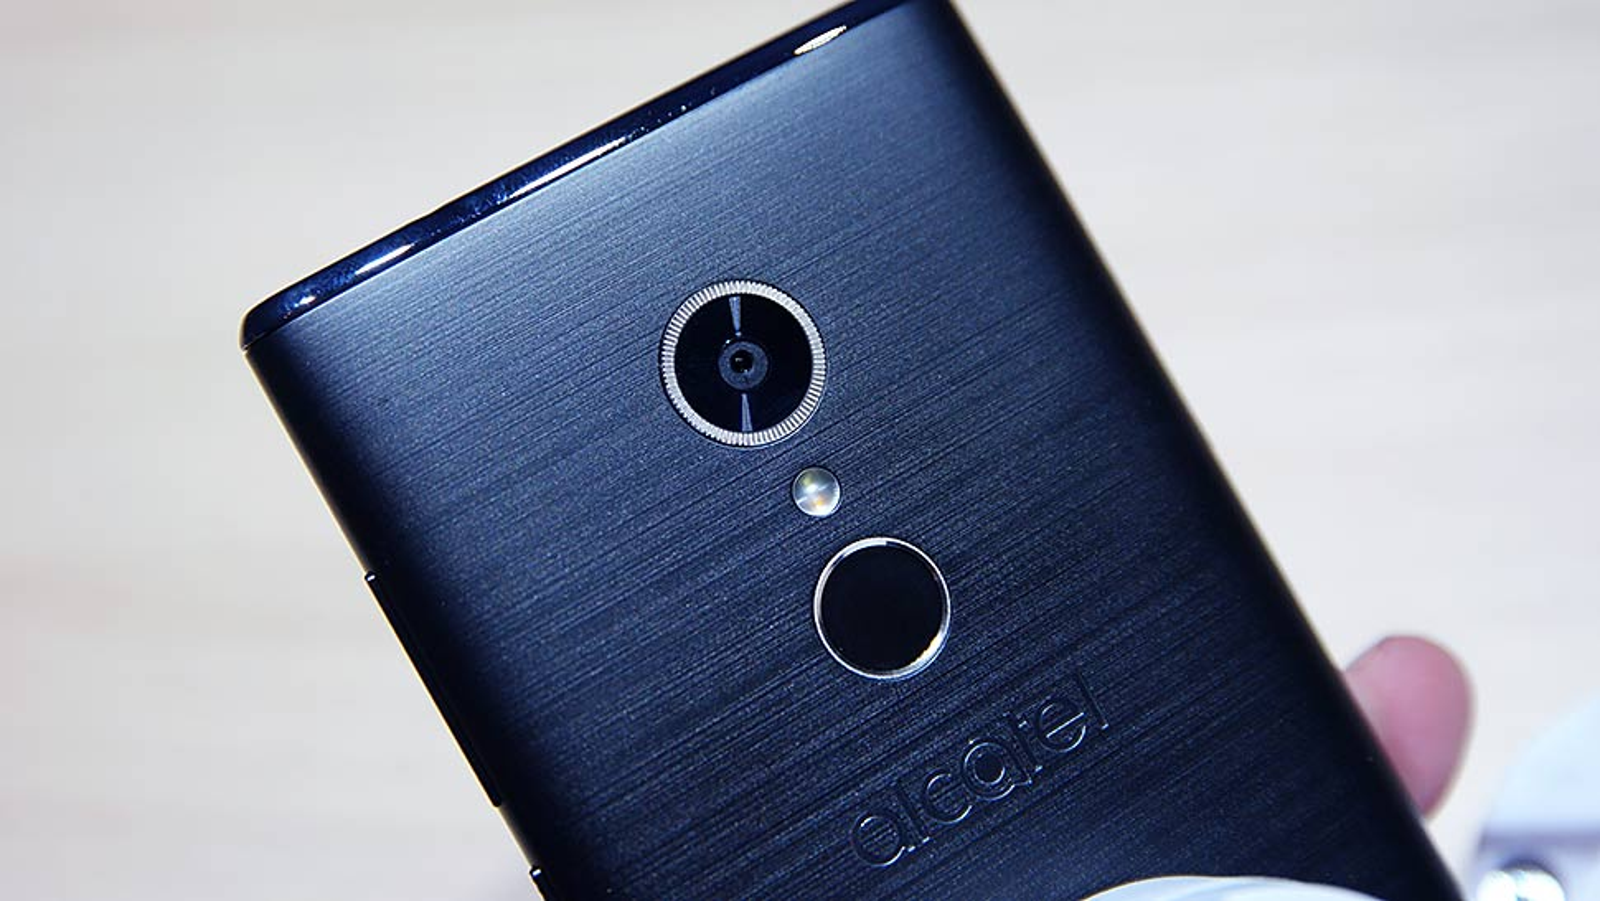 The rear camera on the Series 5.